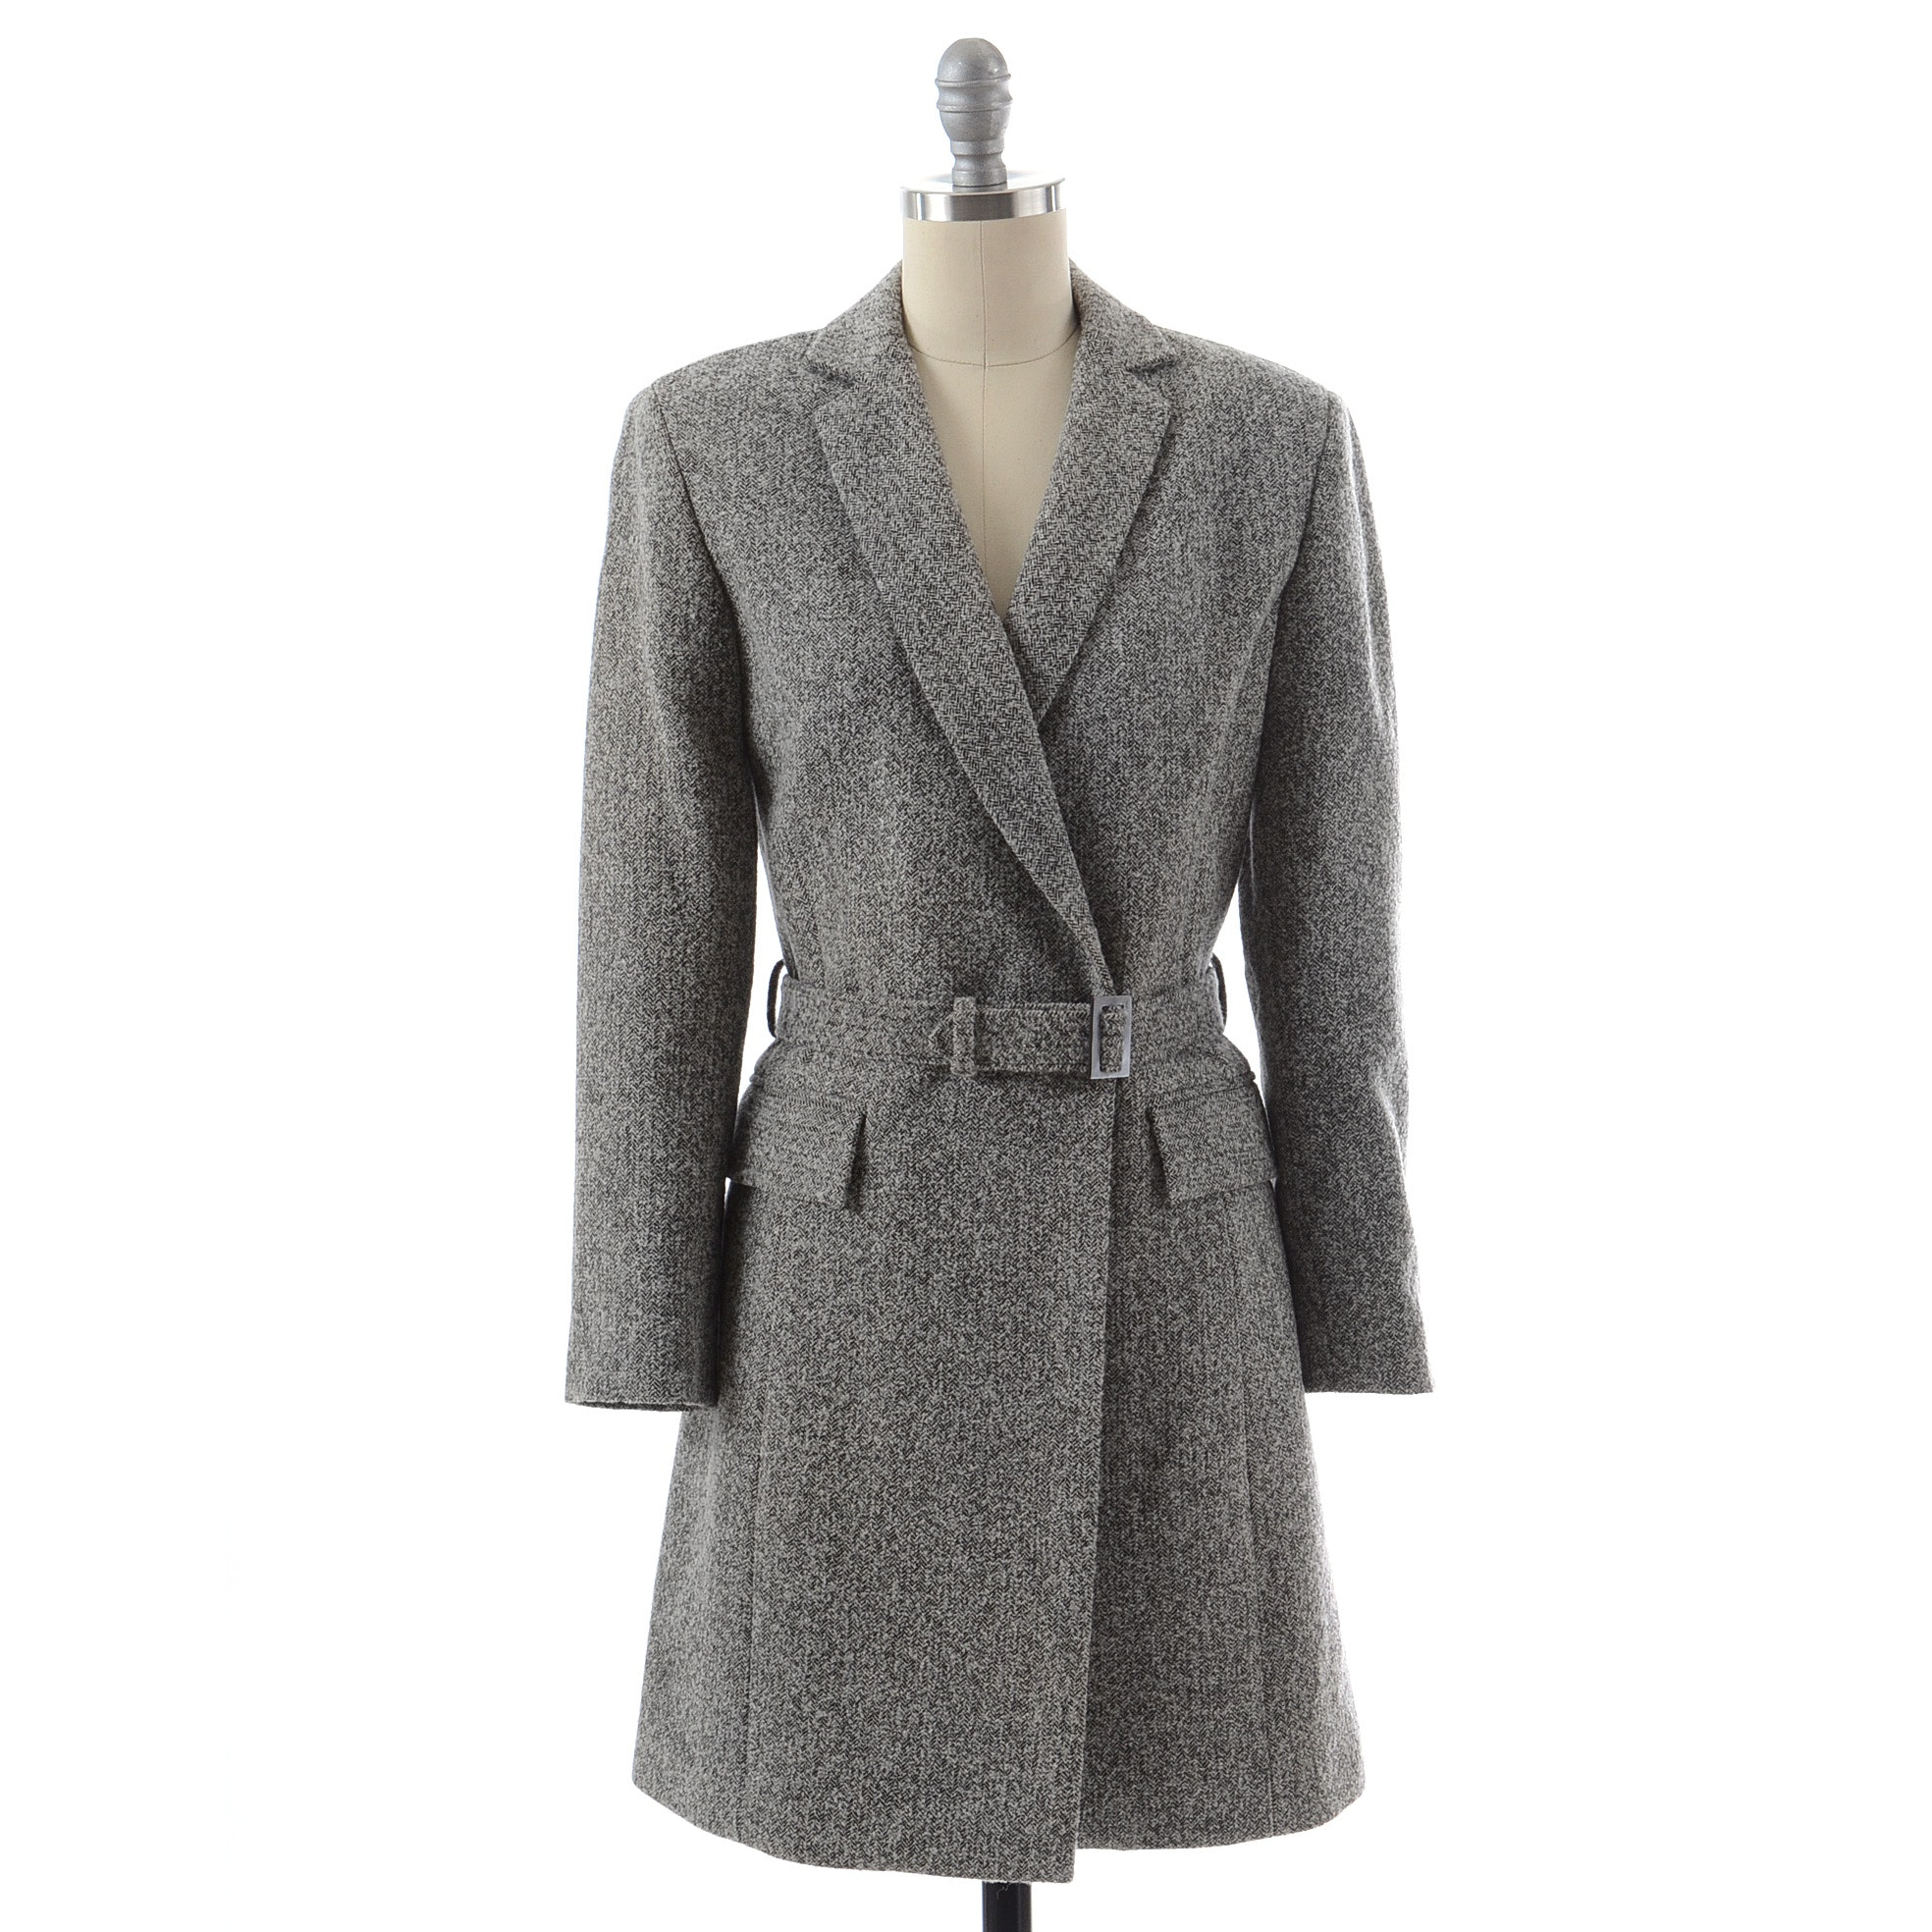 Mark Eisen Herringbone Tweed Wool Blend Single Button Walking Coat